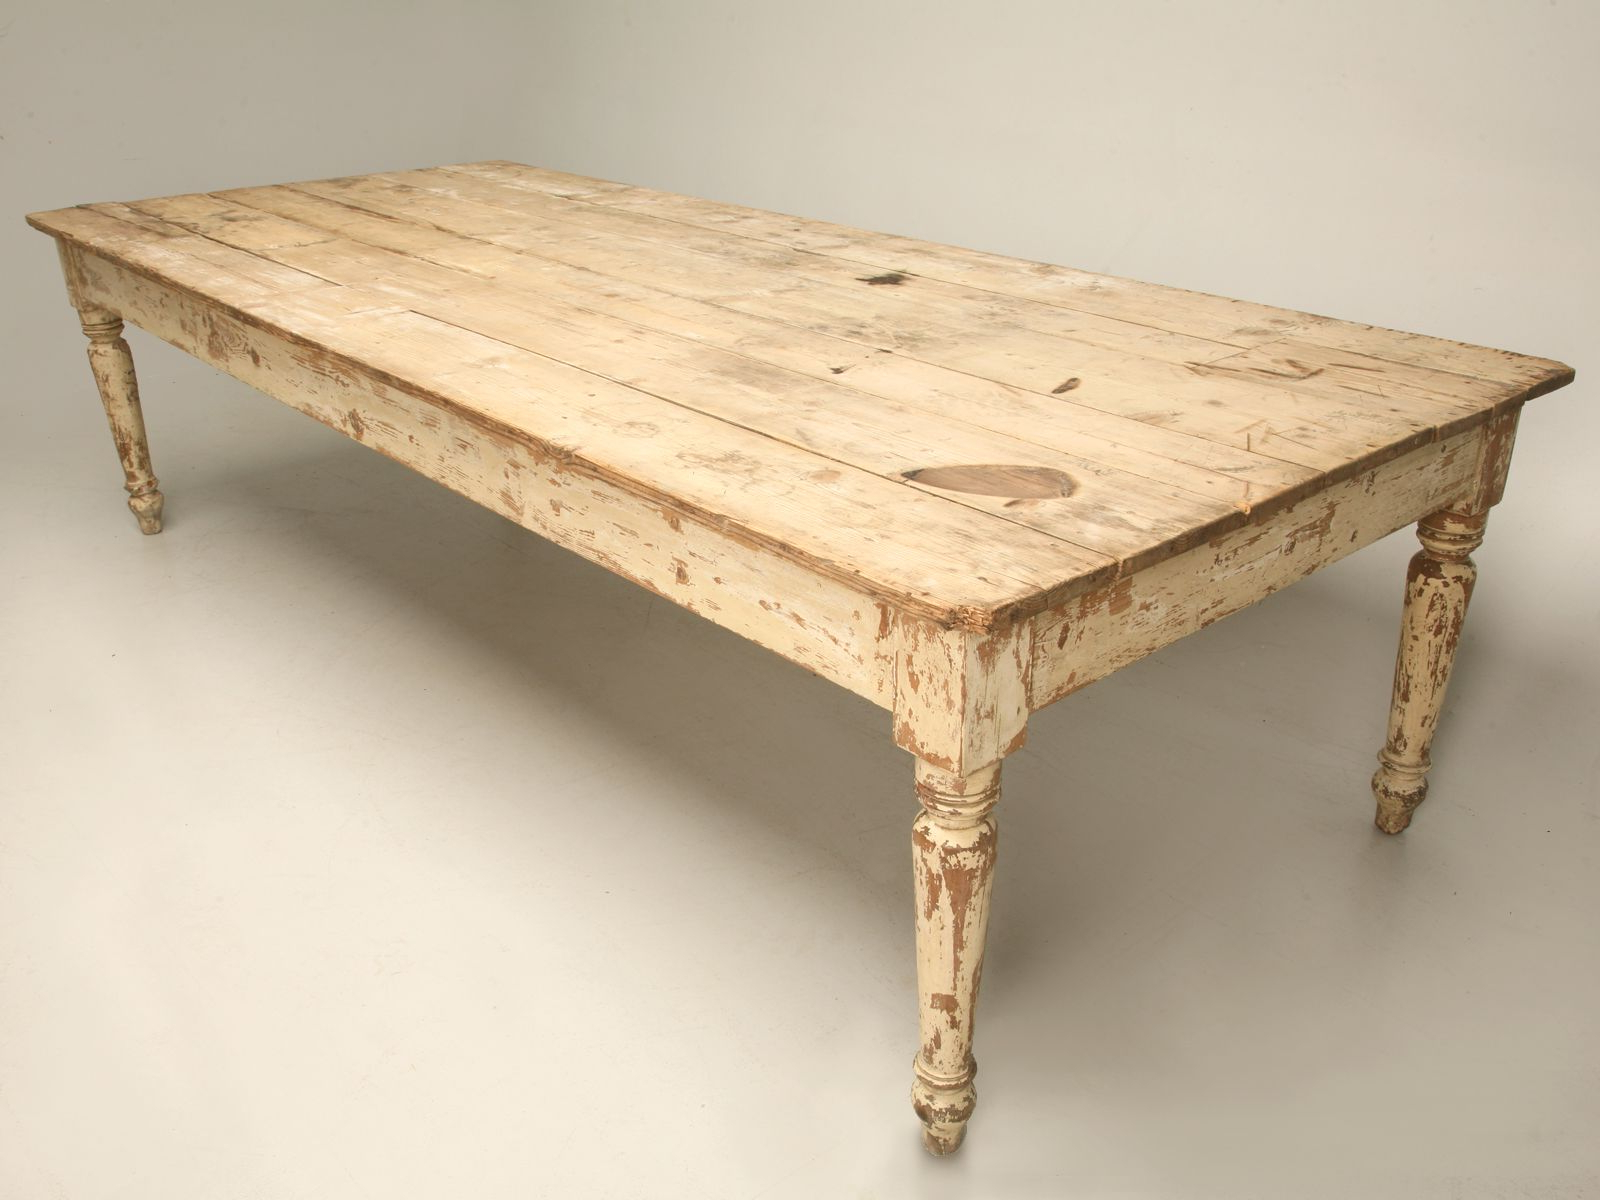 Vintage Dining Table Regarding Recent Country Dining Tables With Weathered Pine Finish (View 6 of 25)